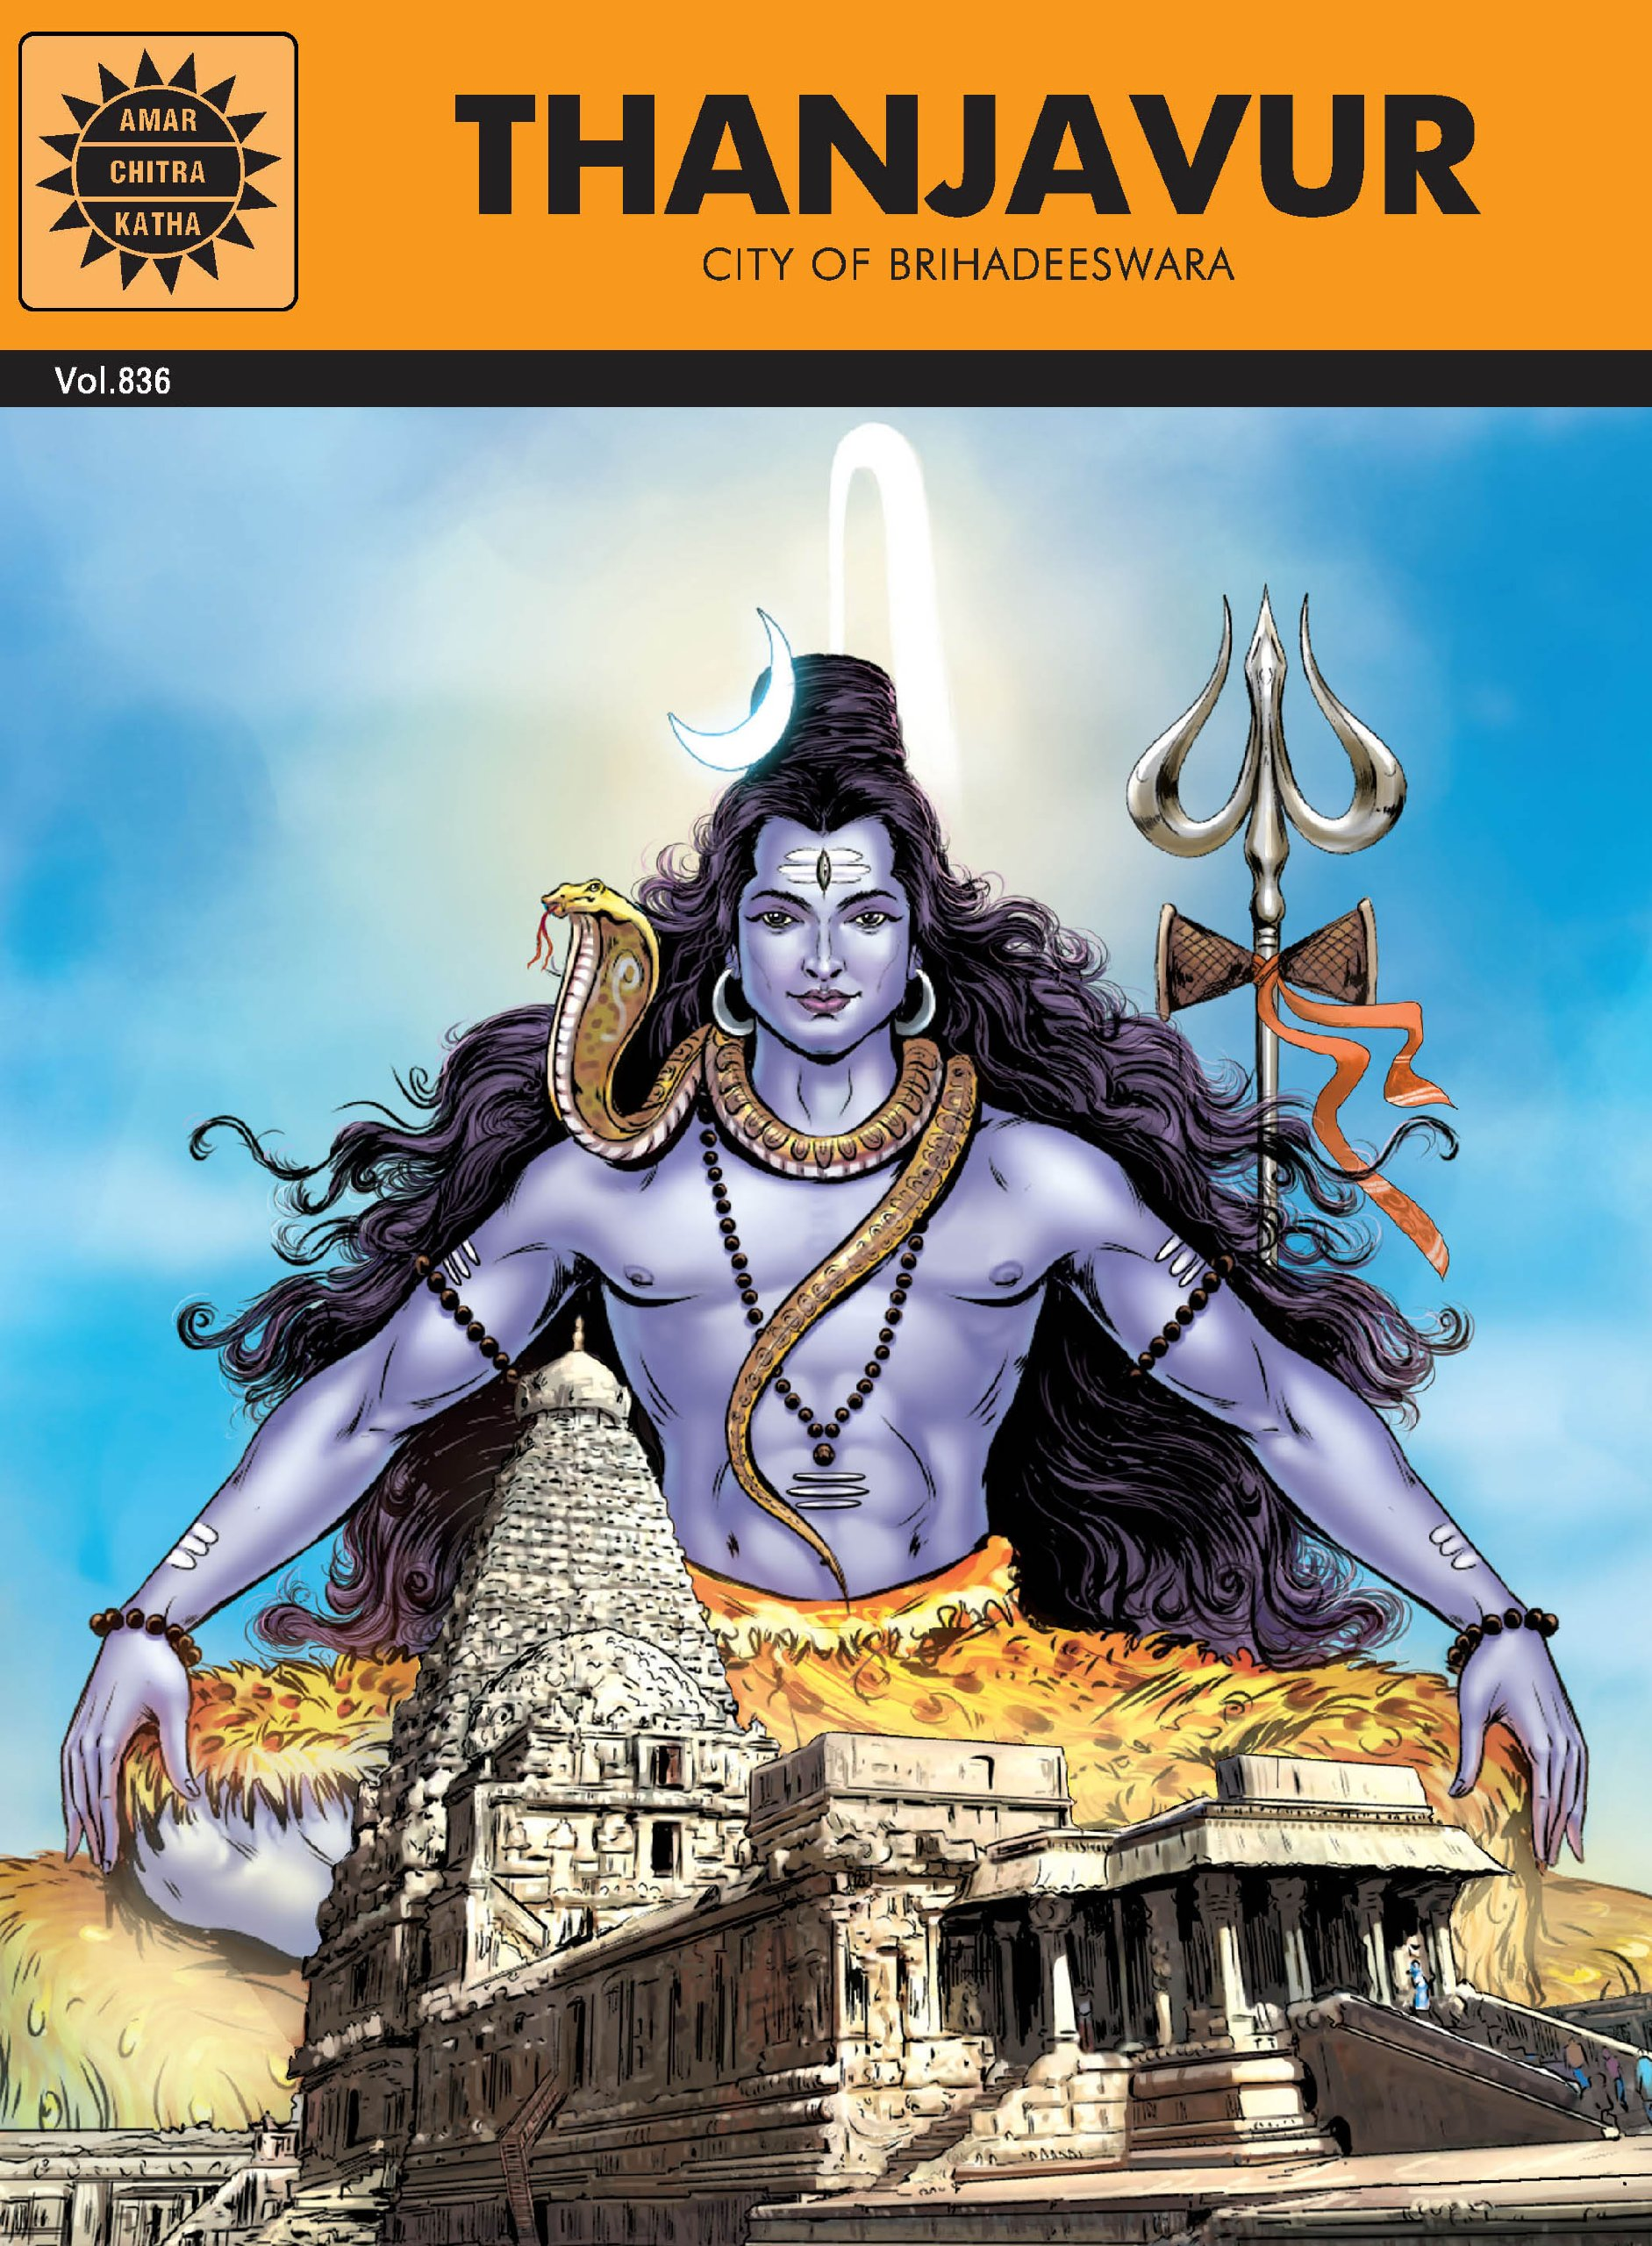 Buy Thanjavur (Amar Chitra Katha) Book Online at Low Prices in India